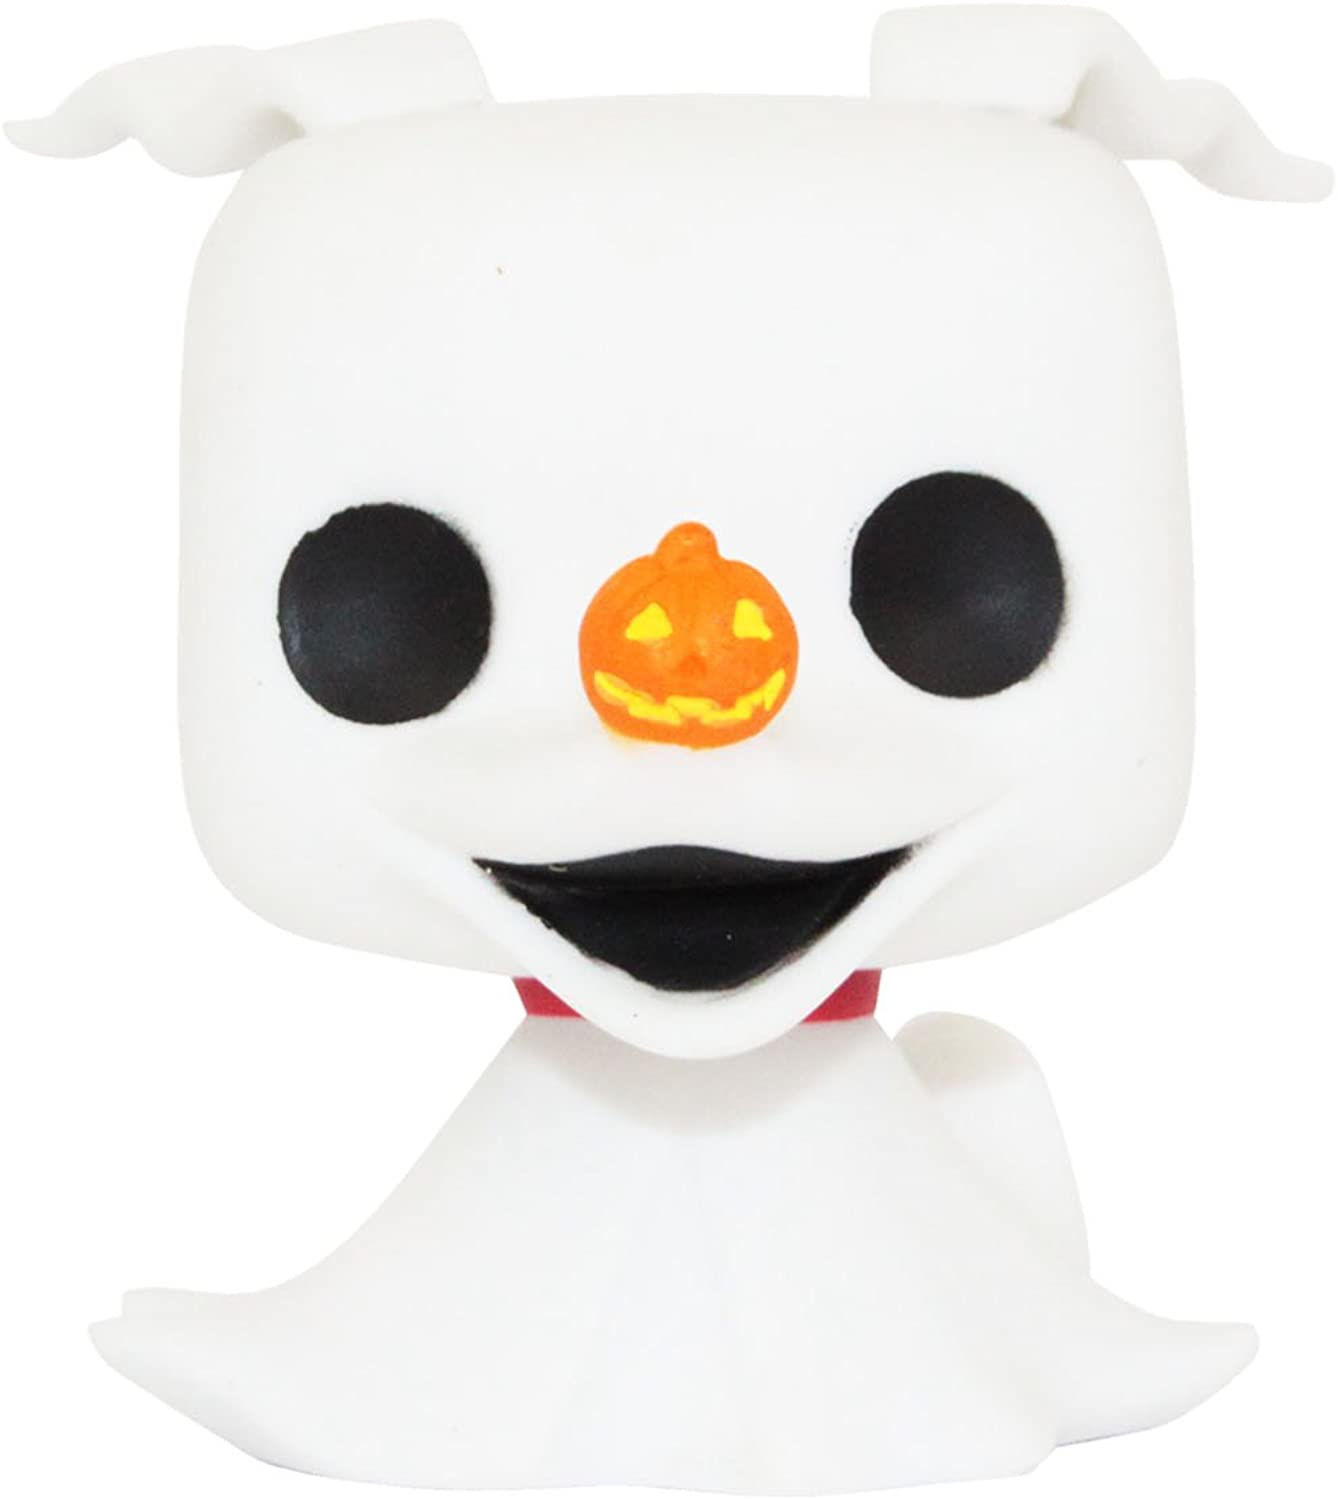 descuento online Unisex-Adultos - Funko - - - Nightmare Before Christmas - Funko Pop  oferta especial